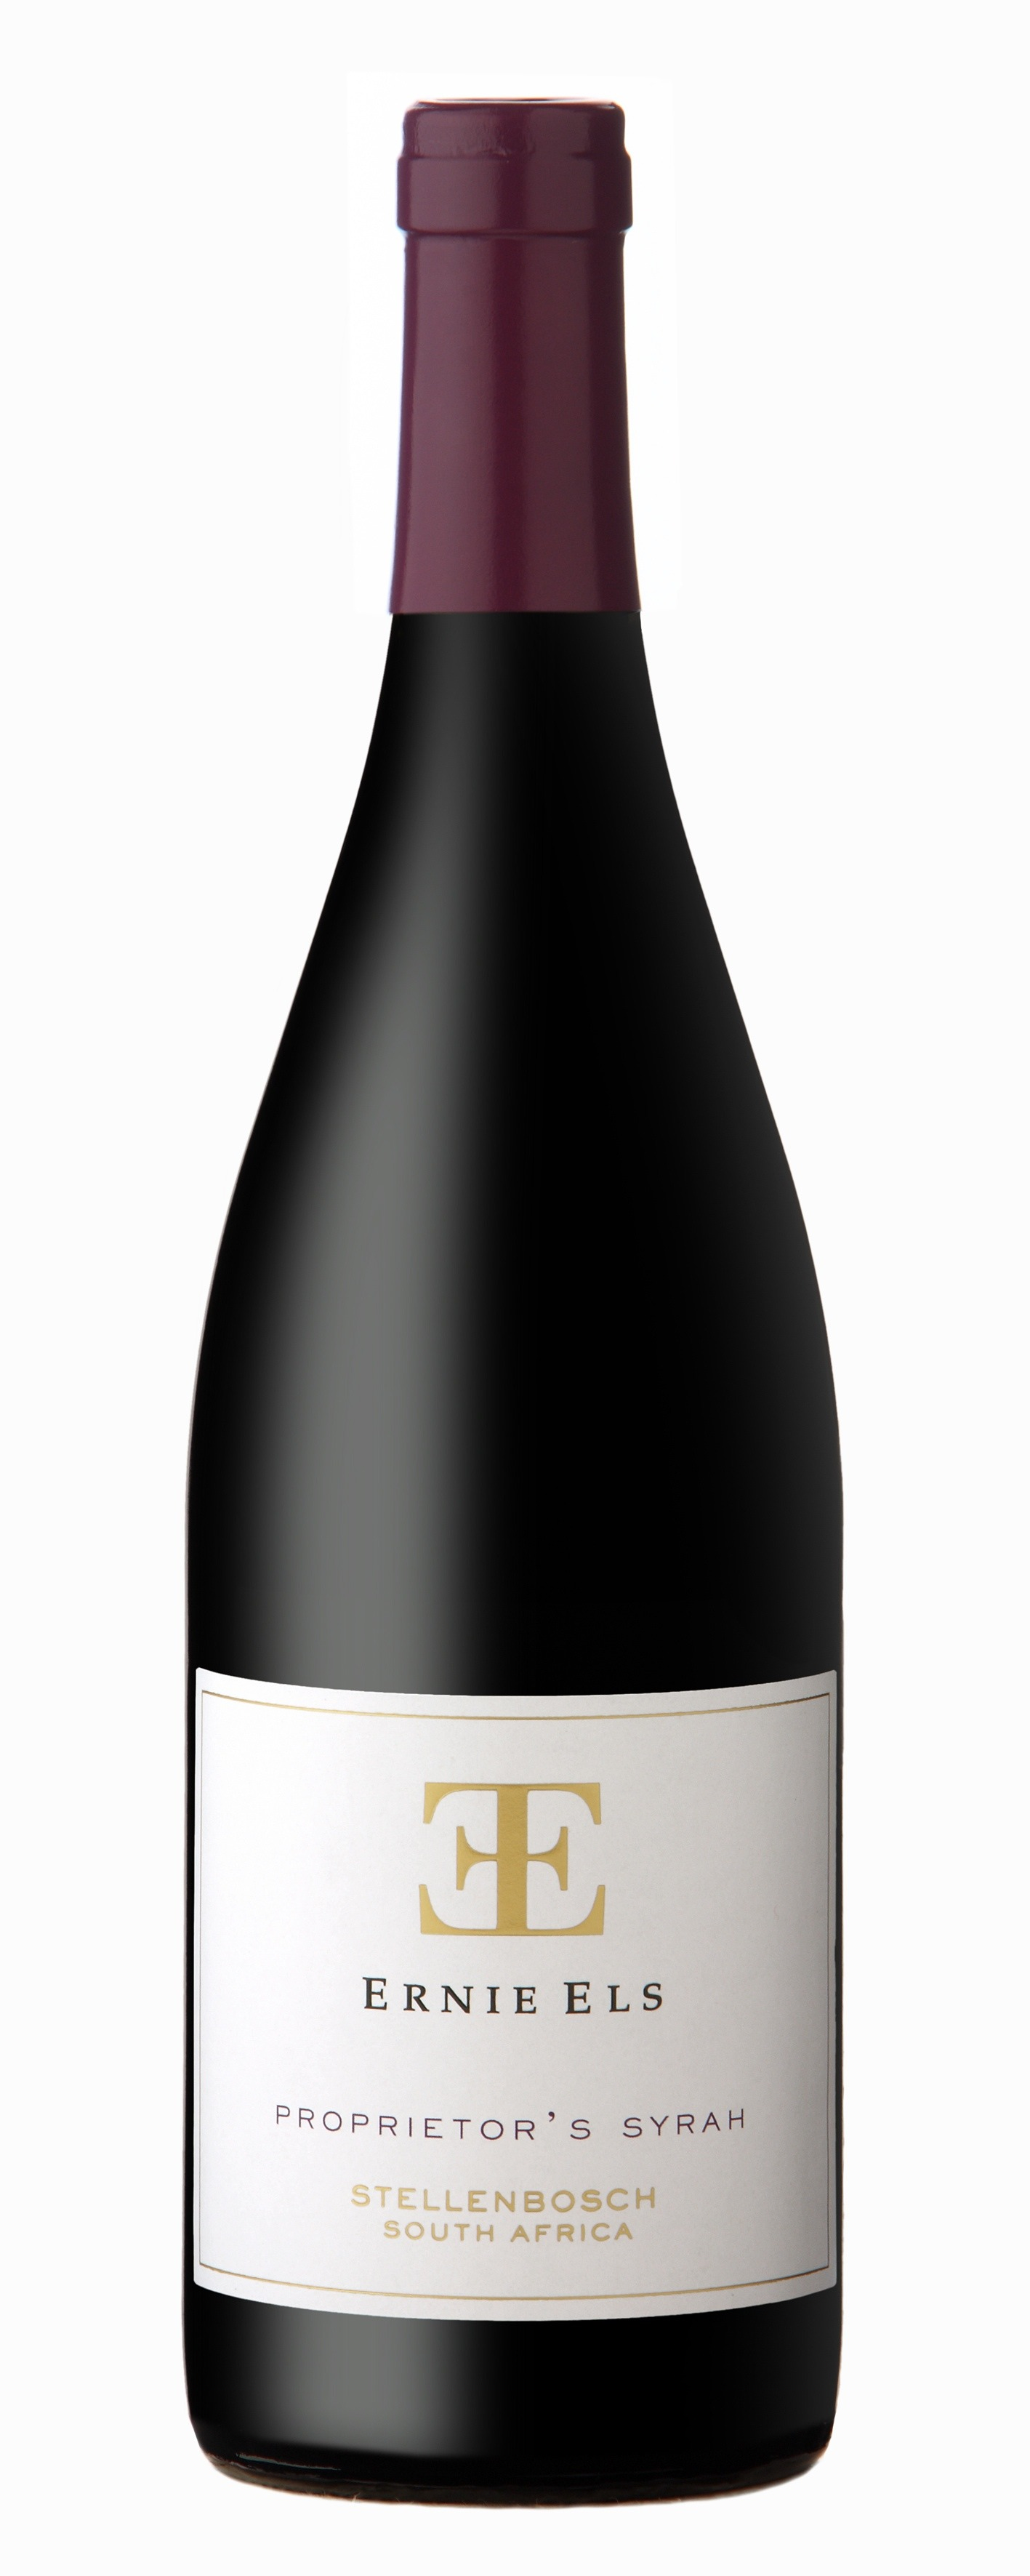 Proprietor's Syrah'14, Ernie Els Wines, 750 ml